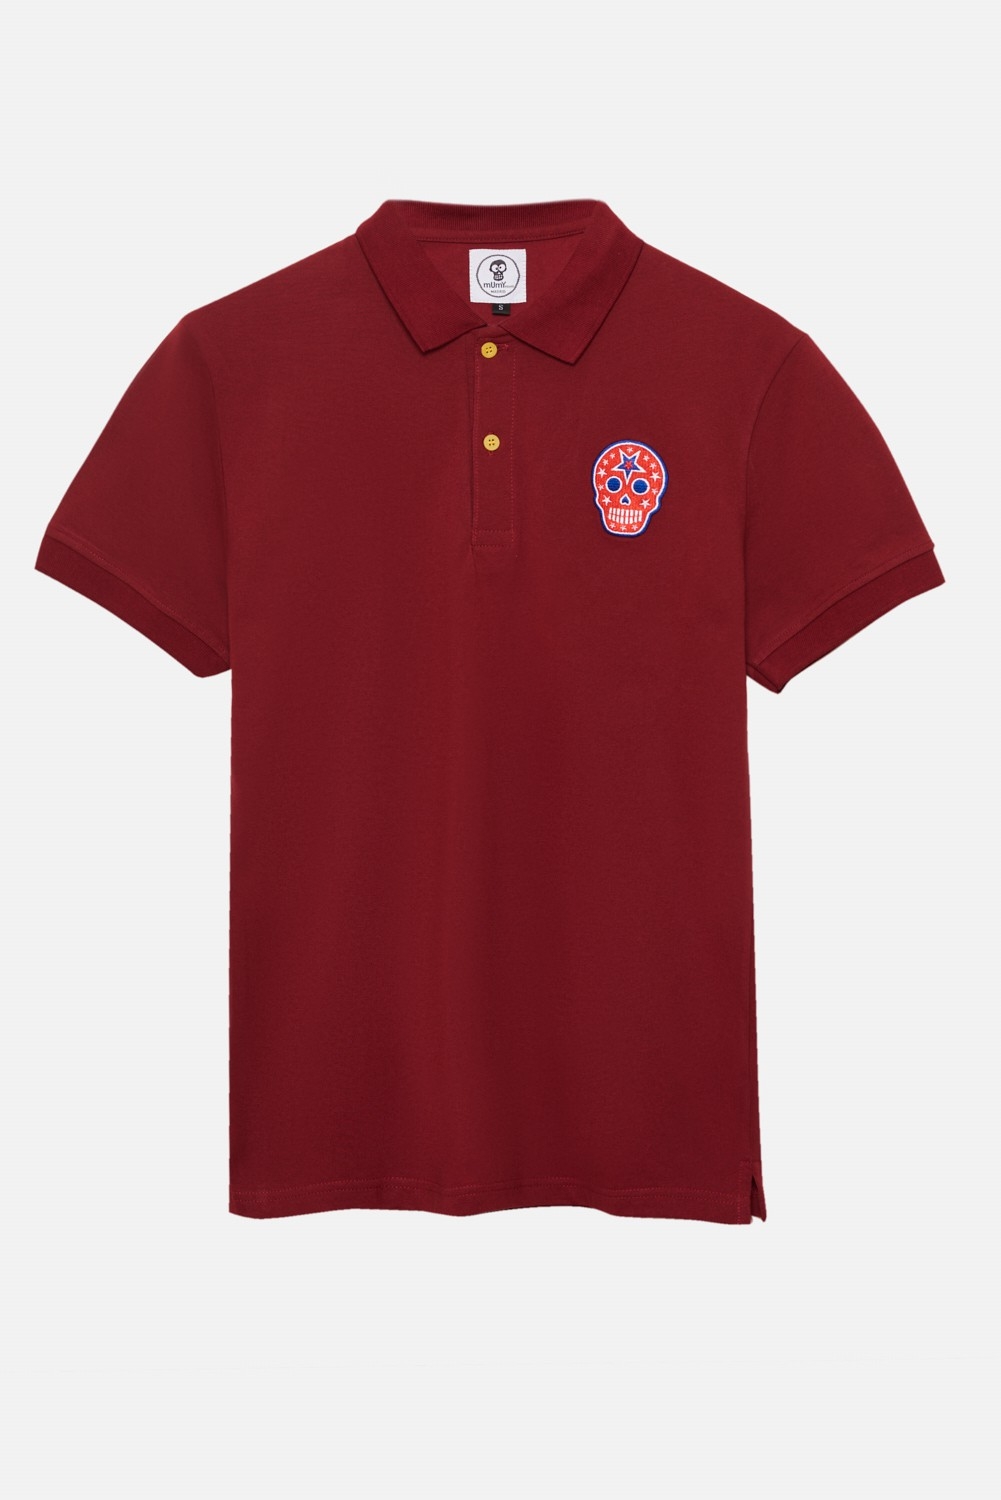 ADULT´S EMBROIDERED POLO RED SKULL IN RED